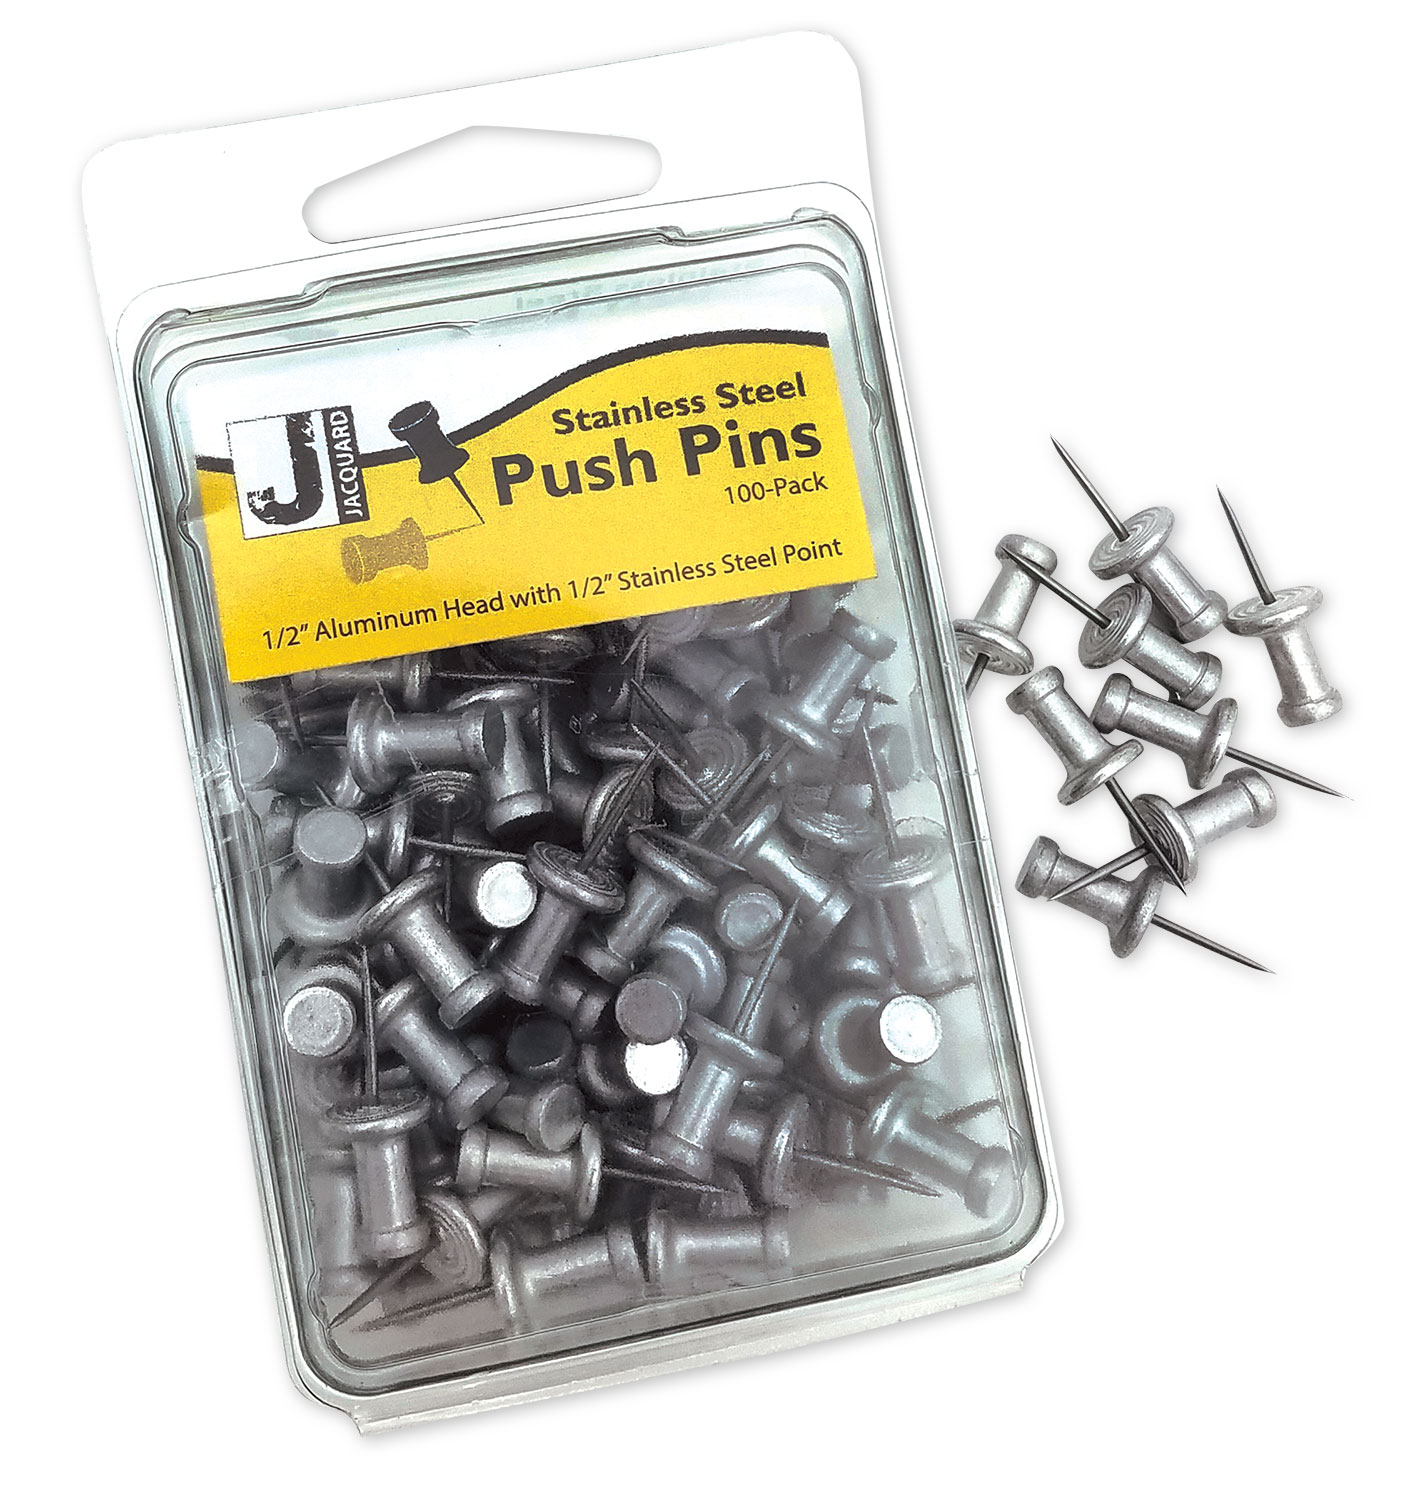 9904001_Push-pins-RGB.jpg